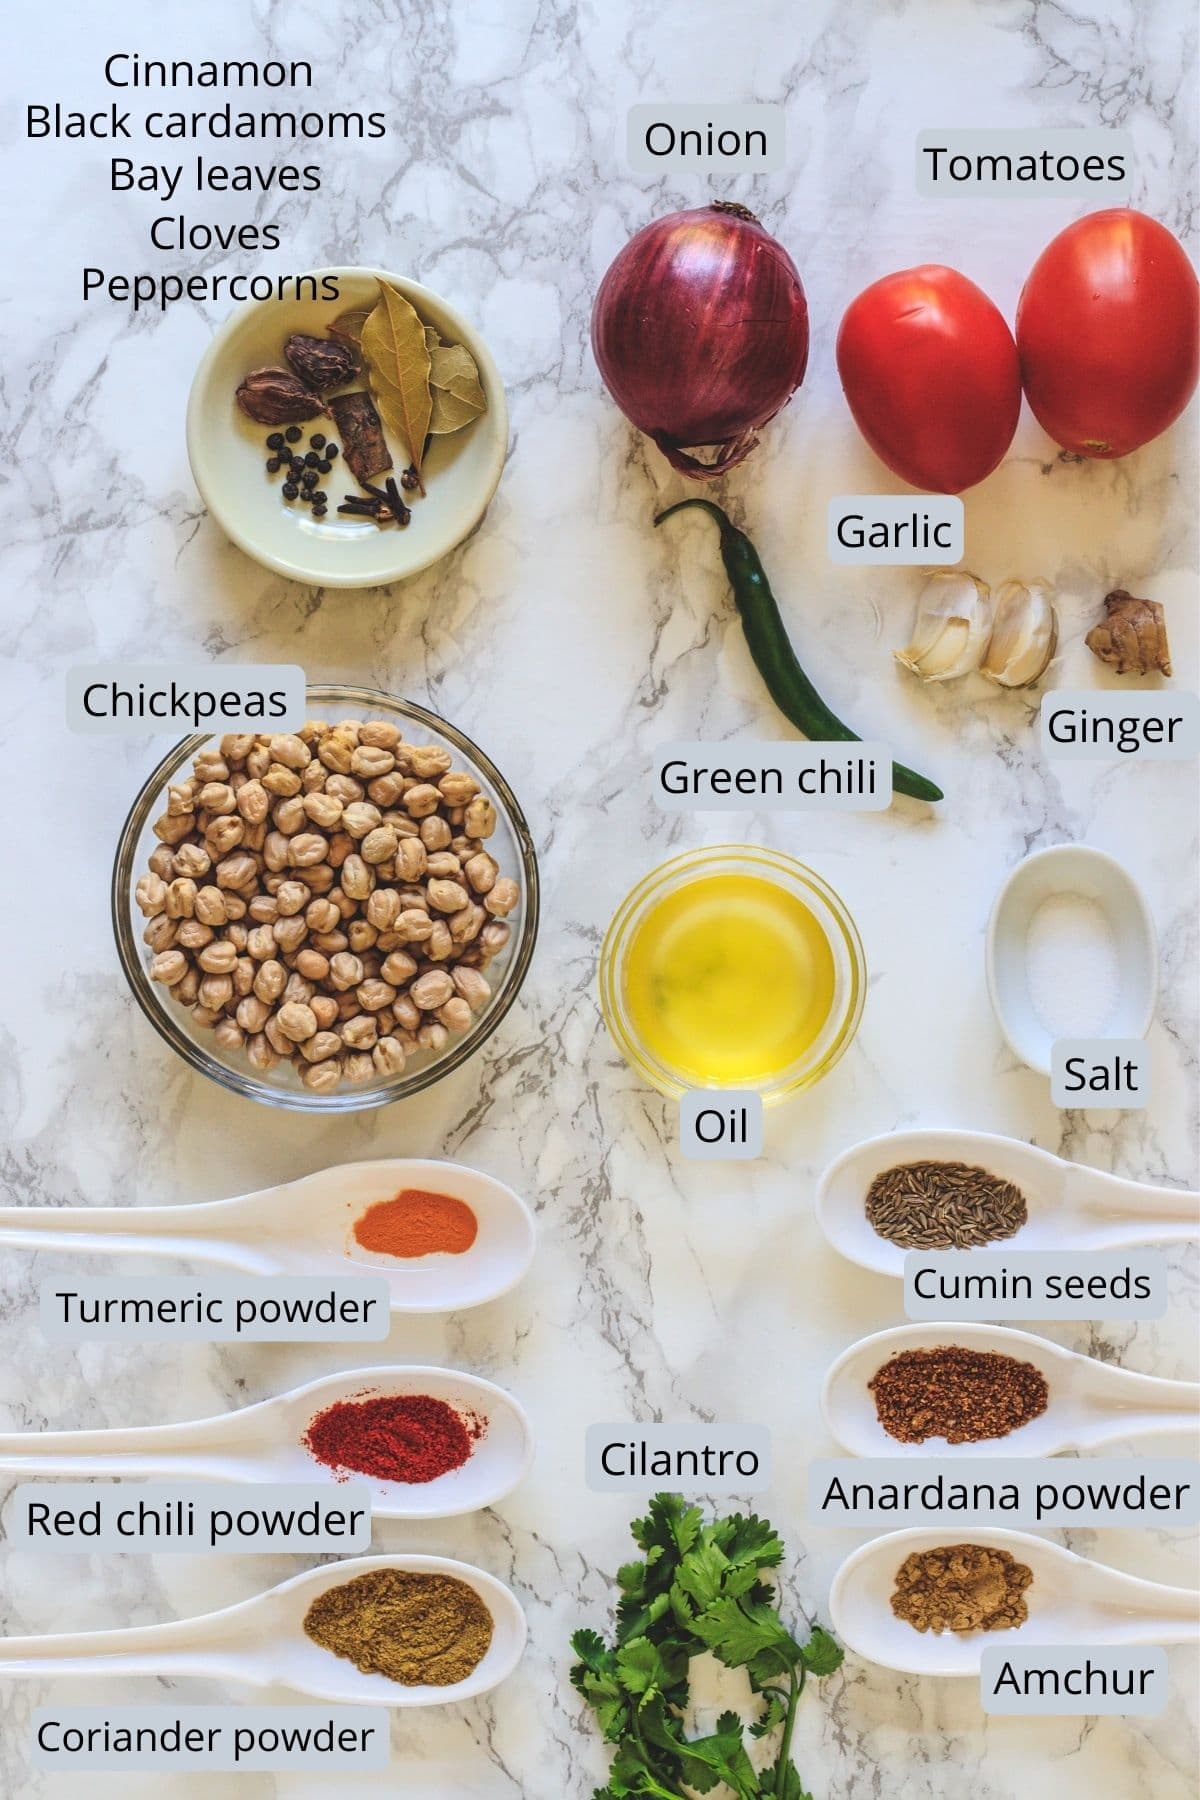 Ingredients used in chole includes chickpeas, onion, tomato, ginger, garlic, chili, oil, salt and spices.